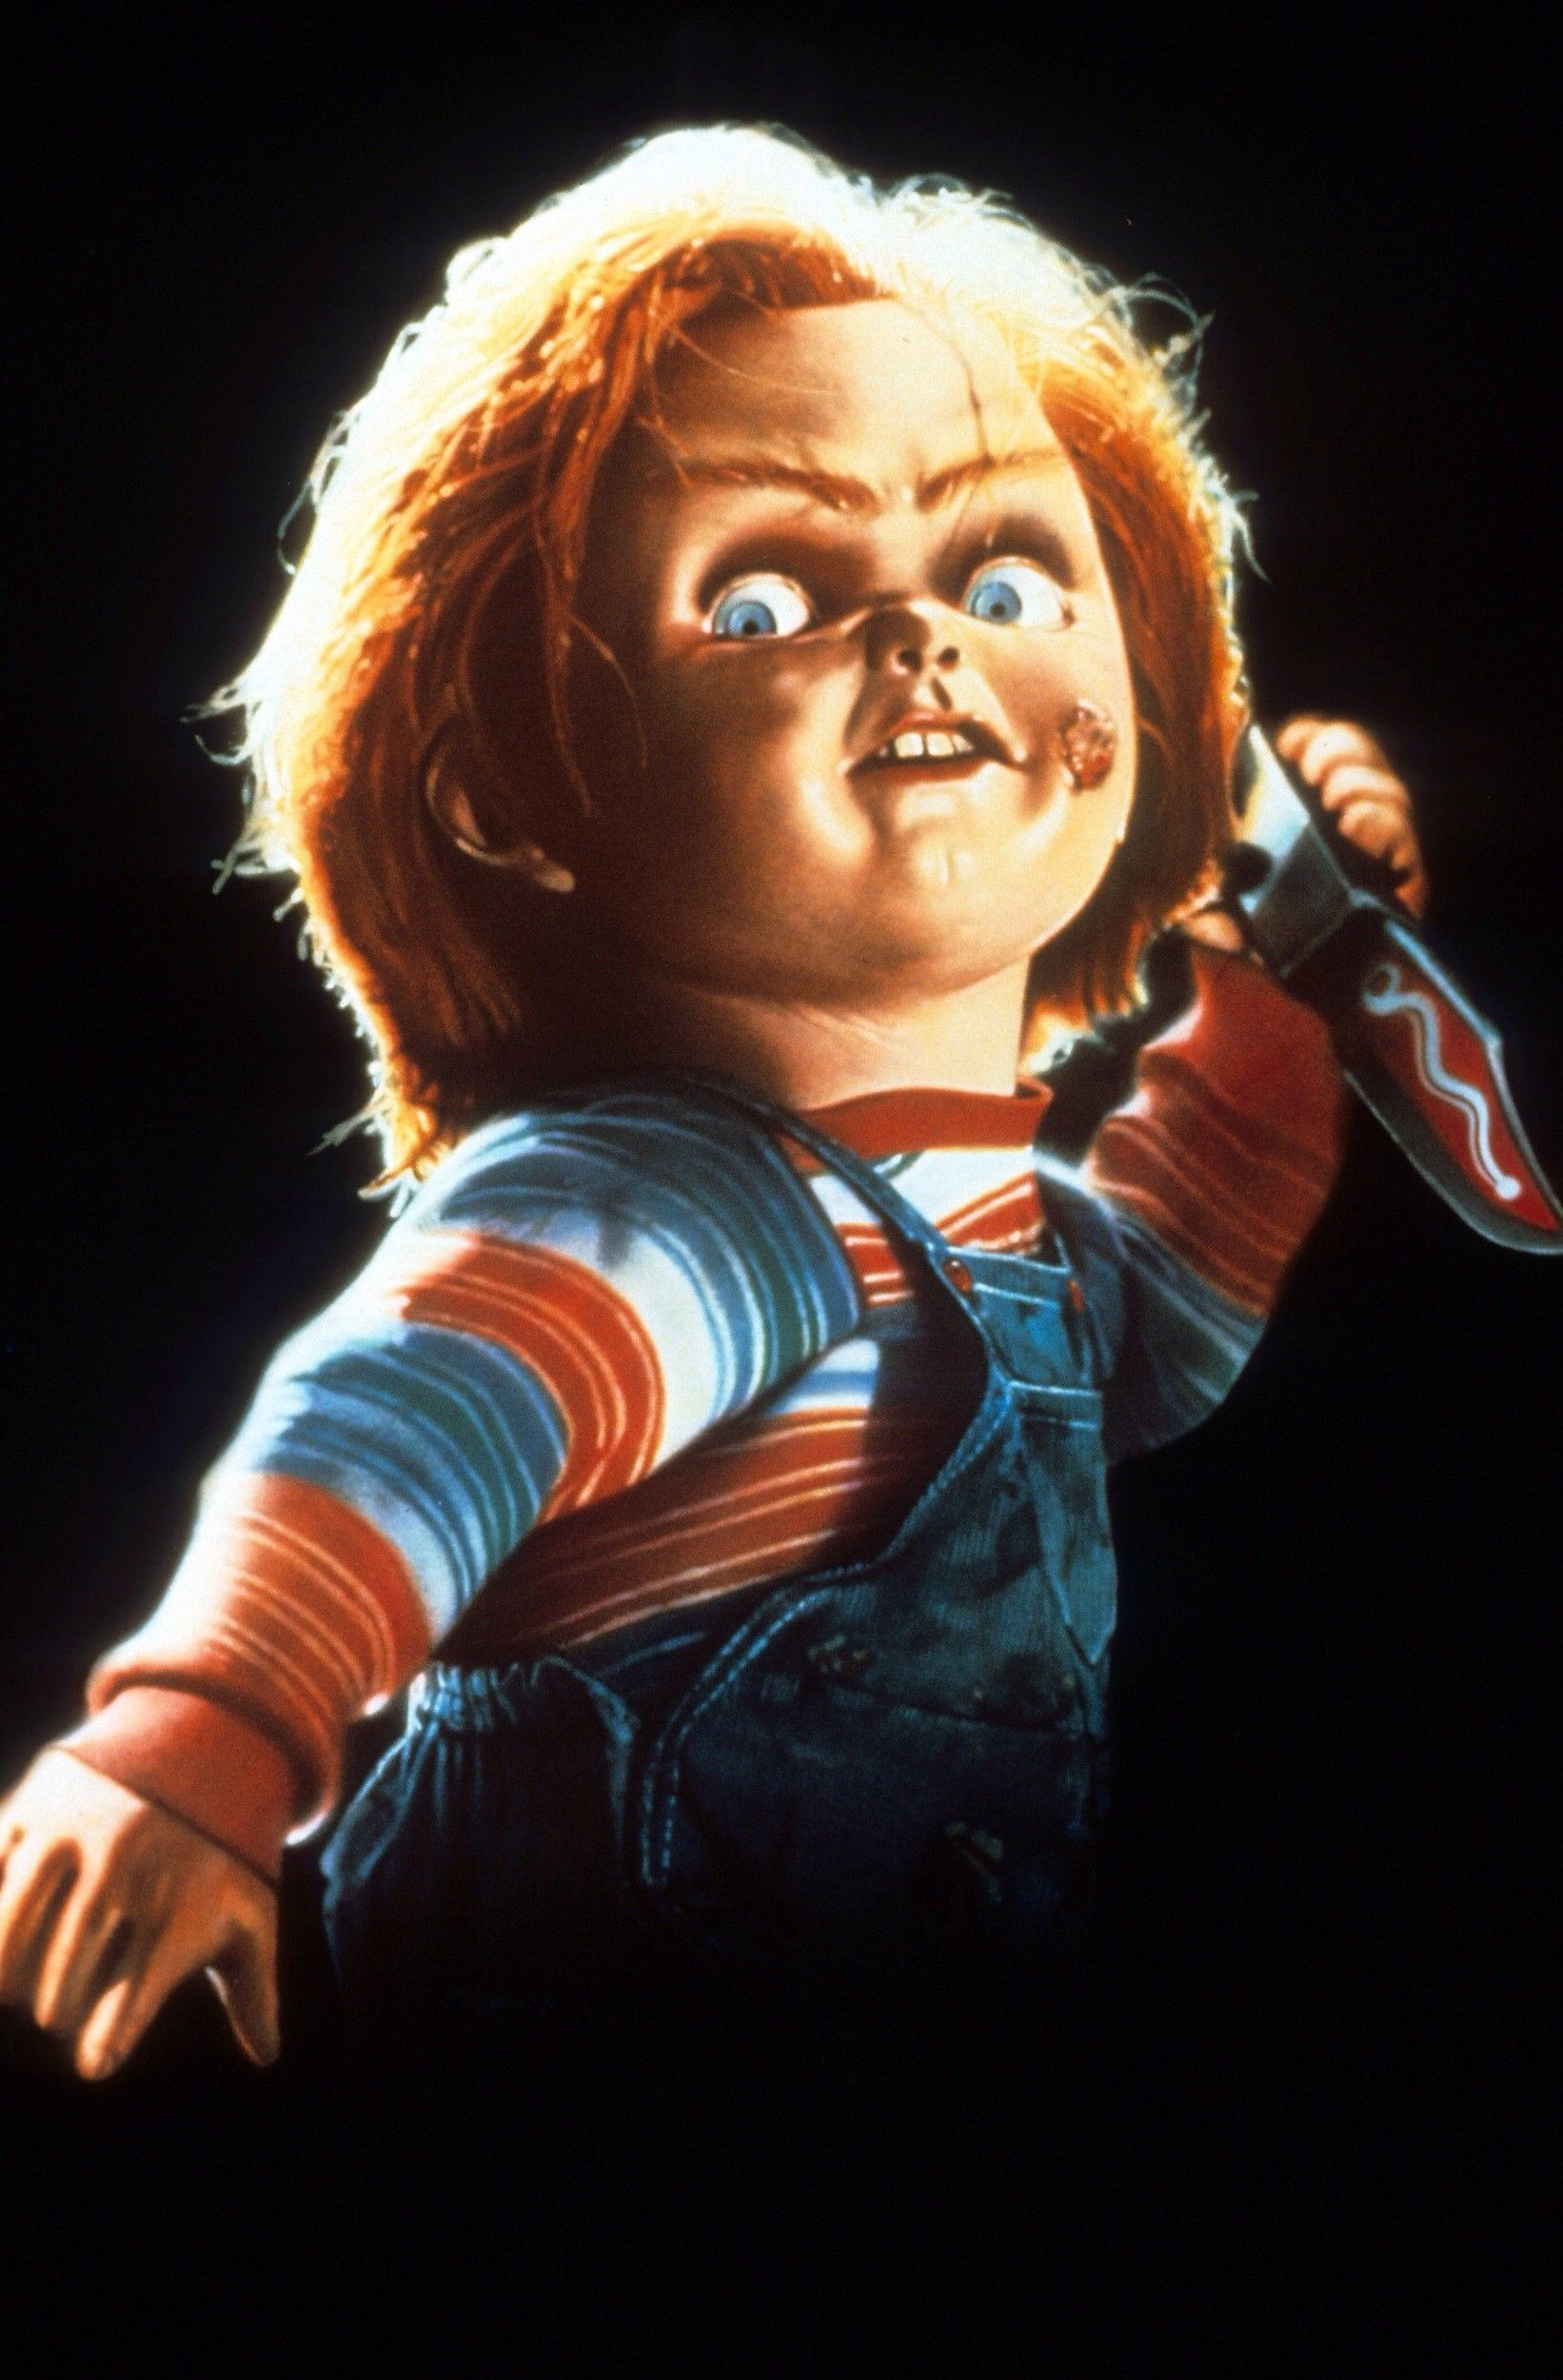 wallpapers of chucky